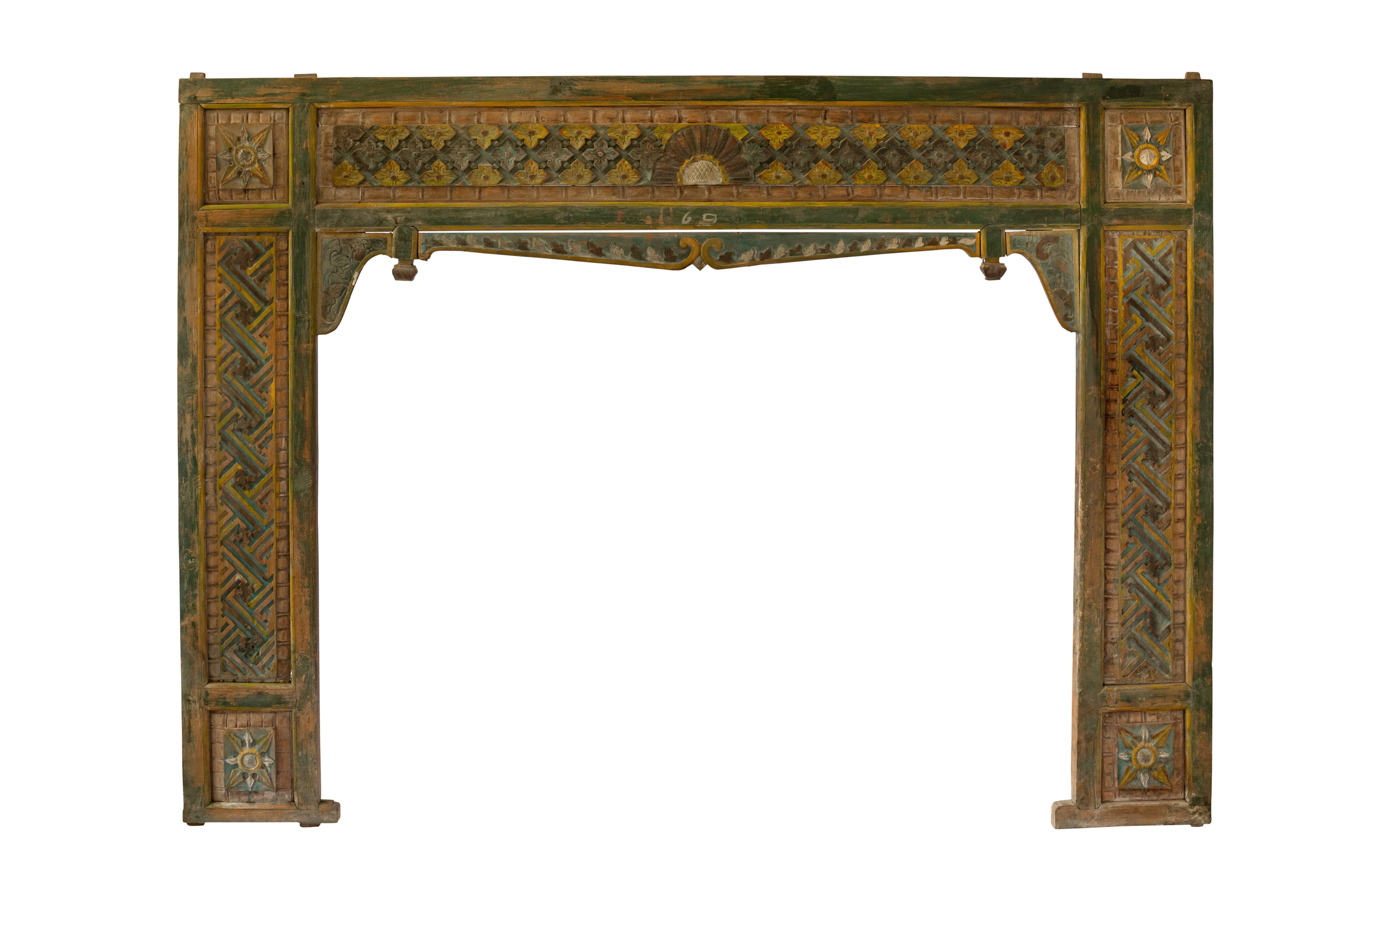 Balinese traditional bed headboard carved in wood